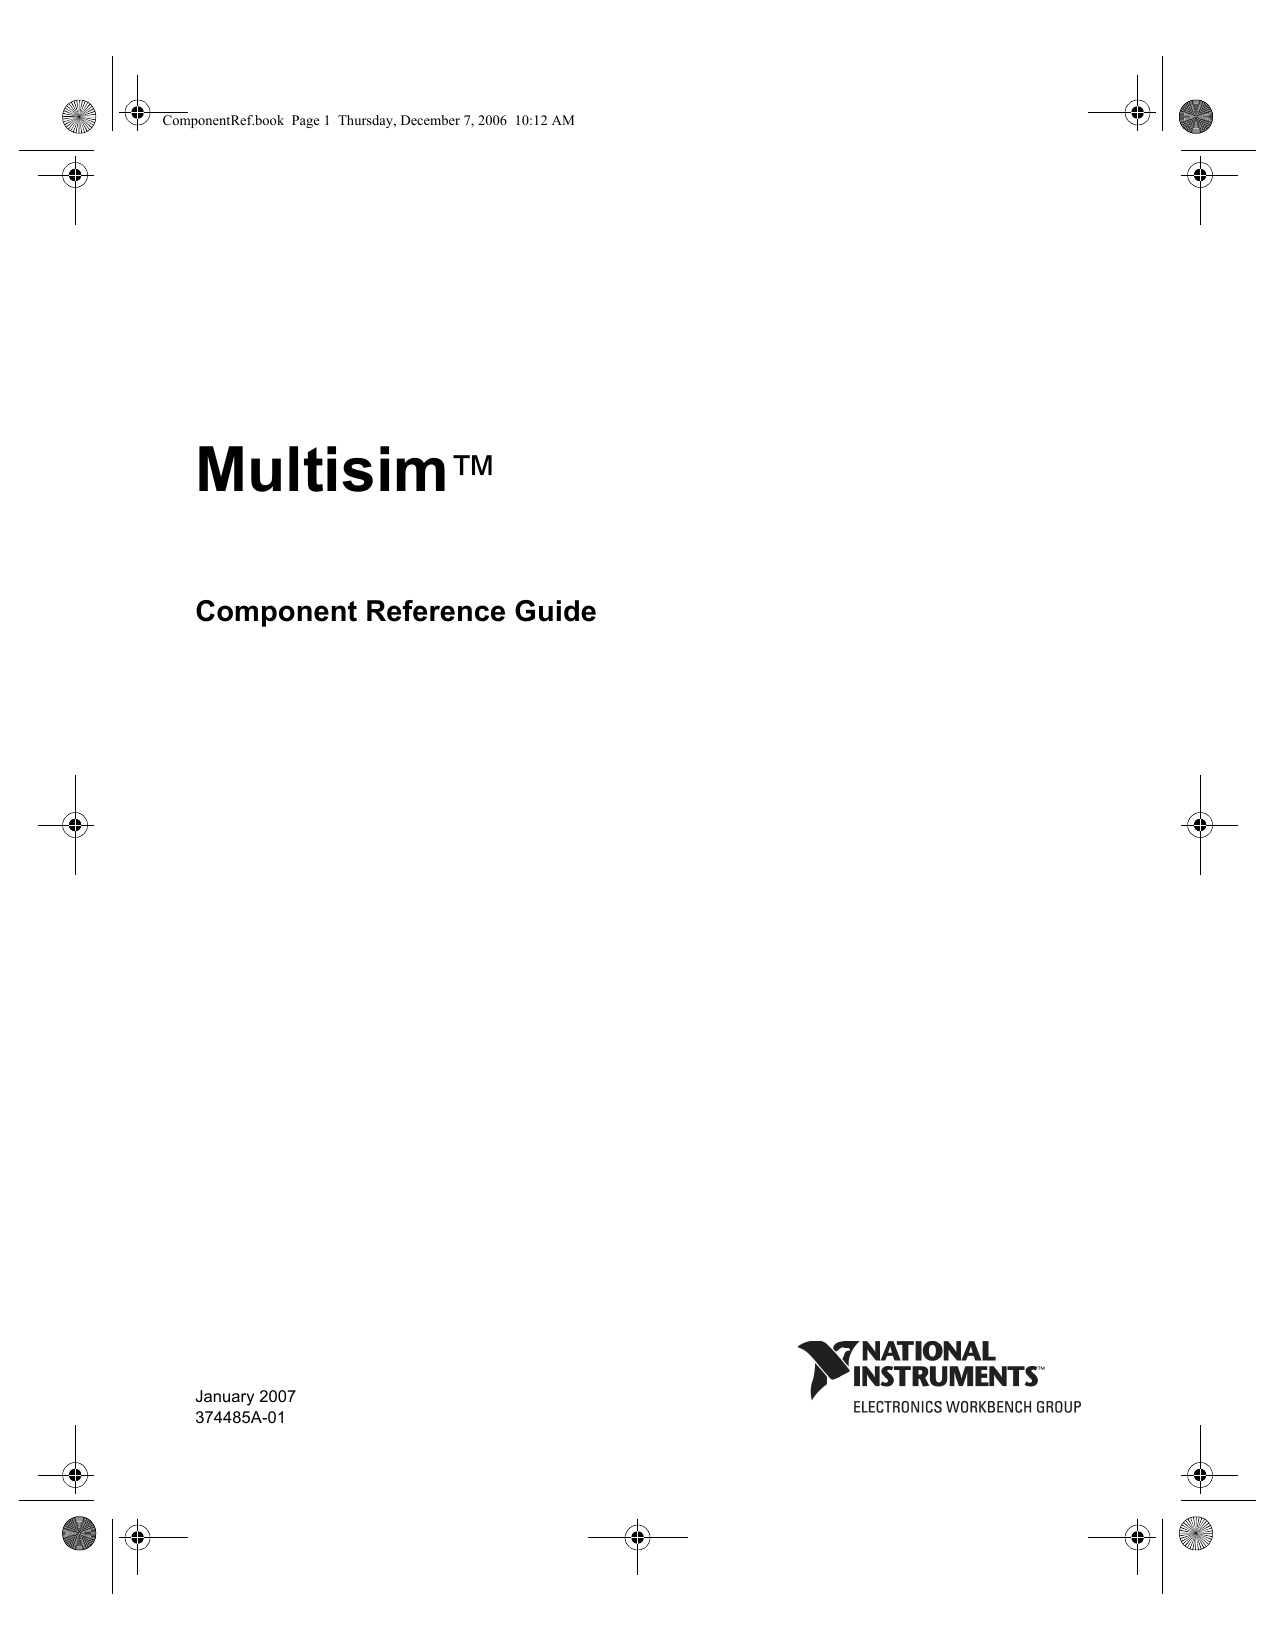 Multisim Component Reference Guide 1kw Rmsmosfetamplifier Service Manual Free Download Schematics